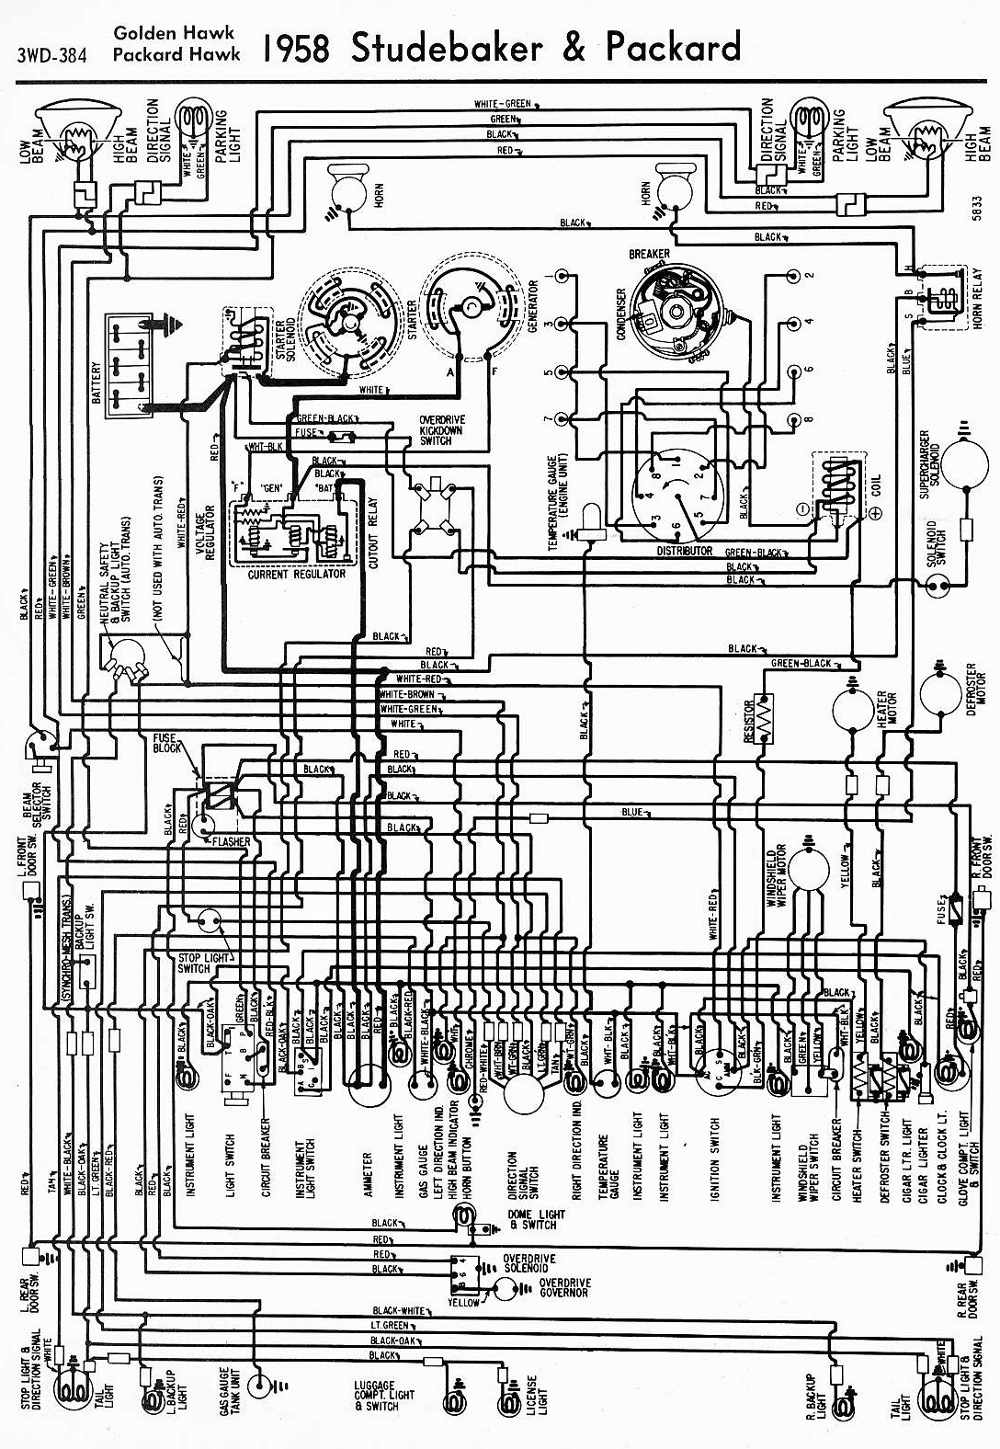 hight resolution of 1958 studebaker and packard golden hawk and packard hawk wiring diagram